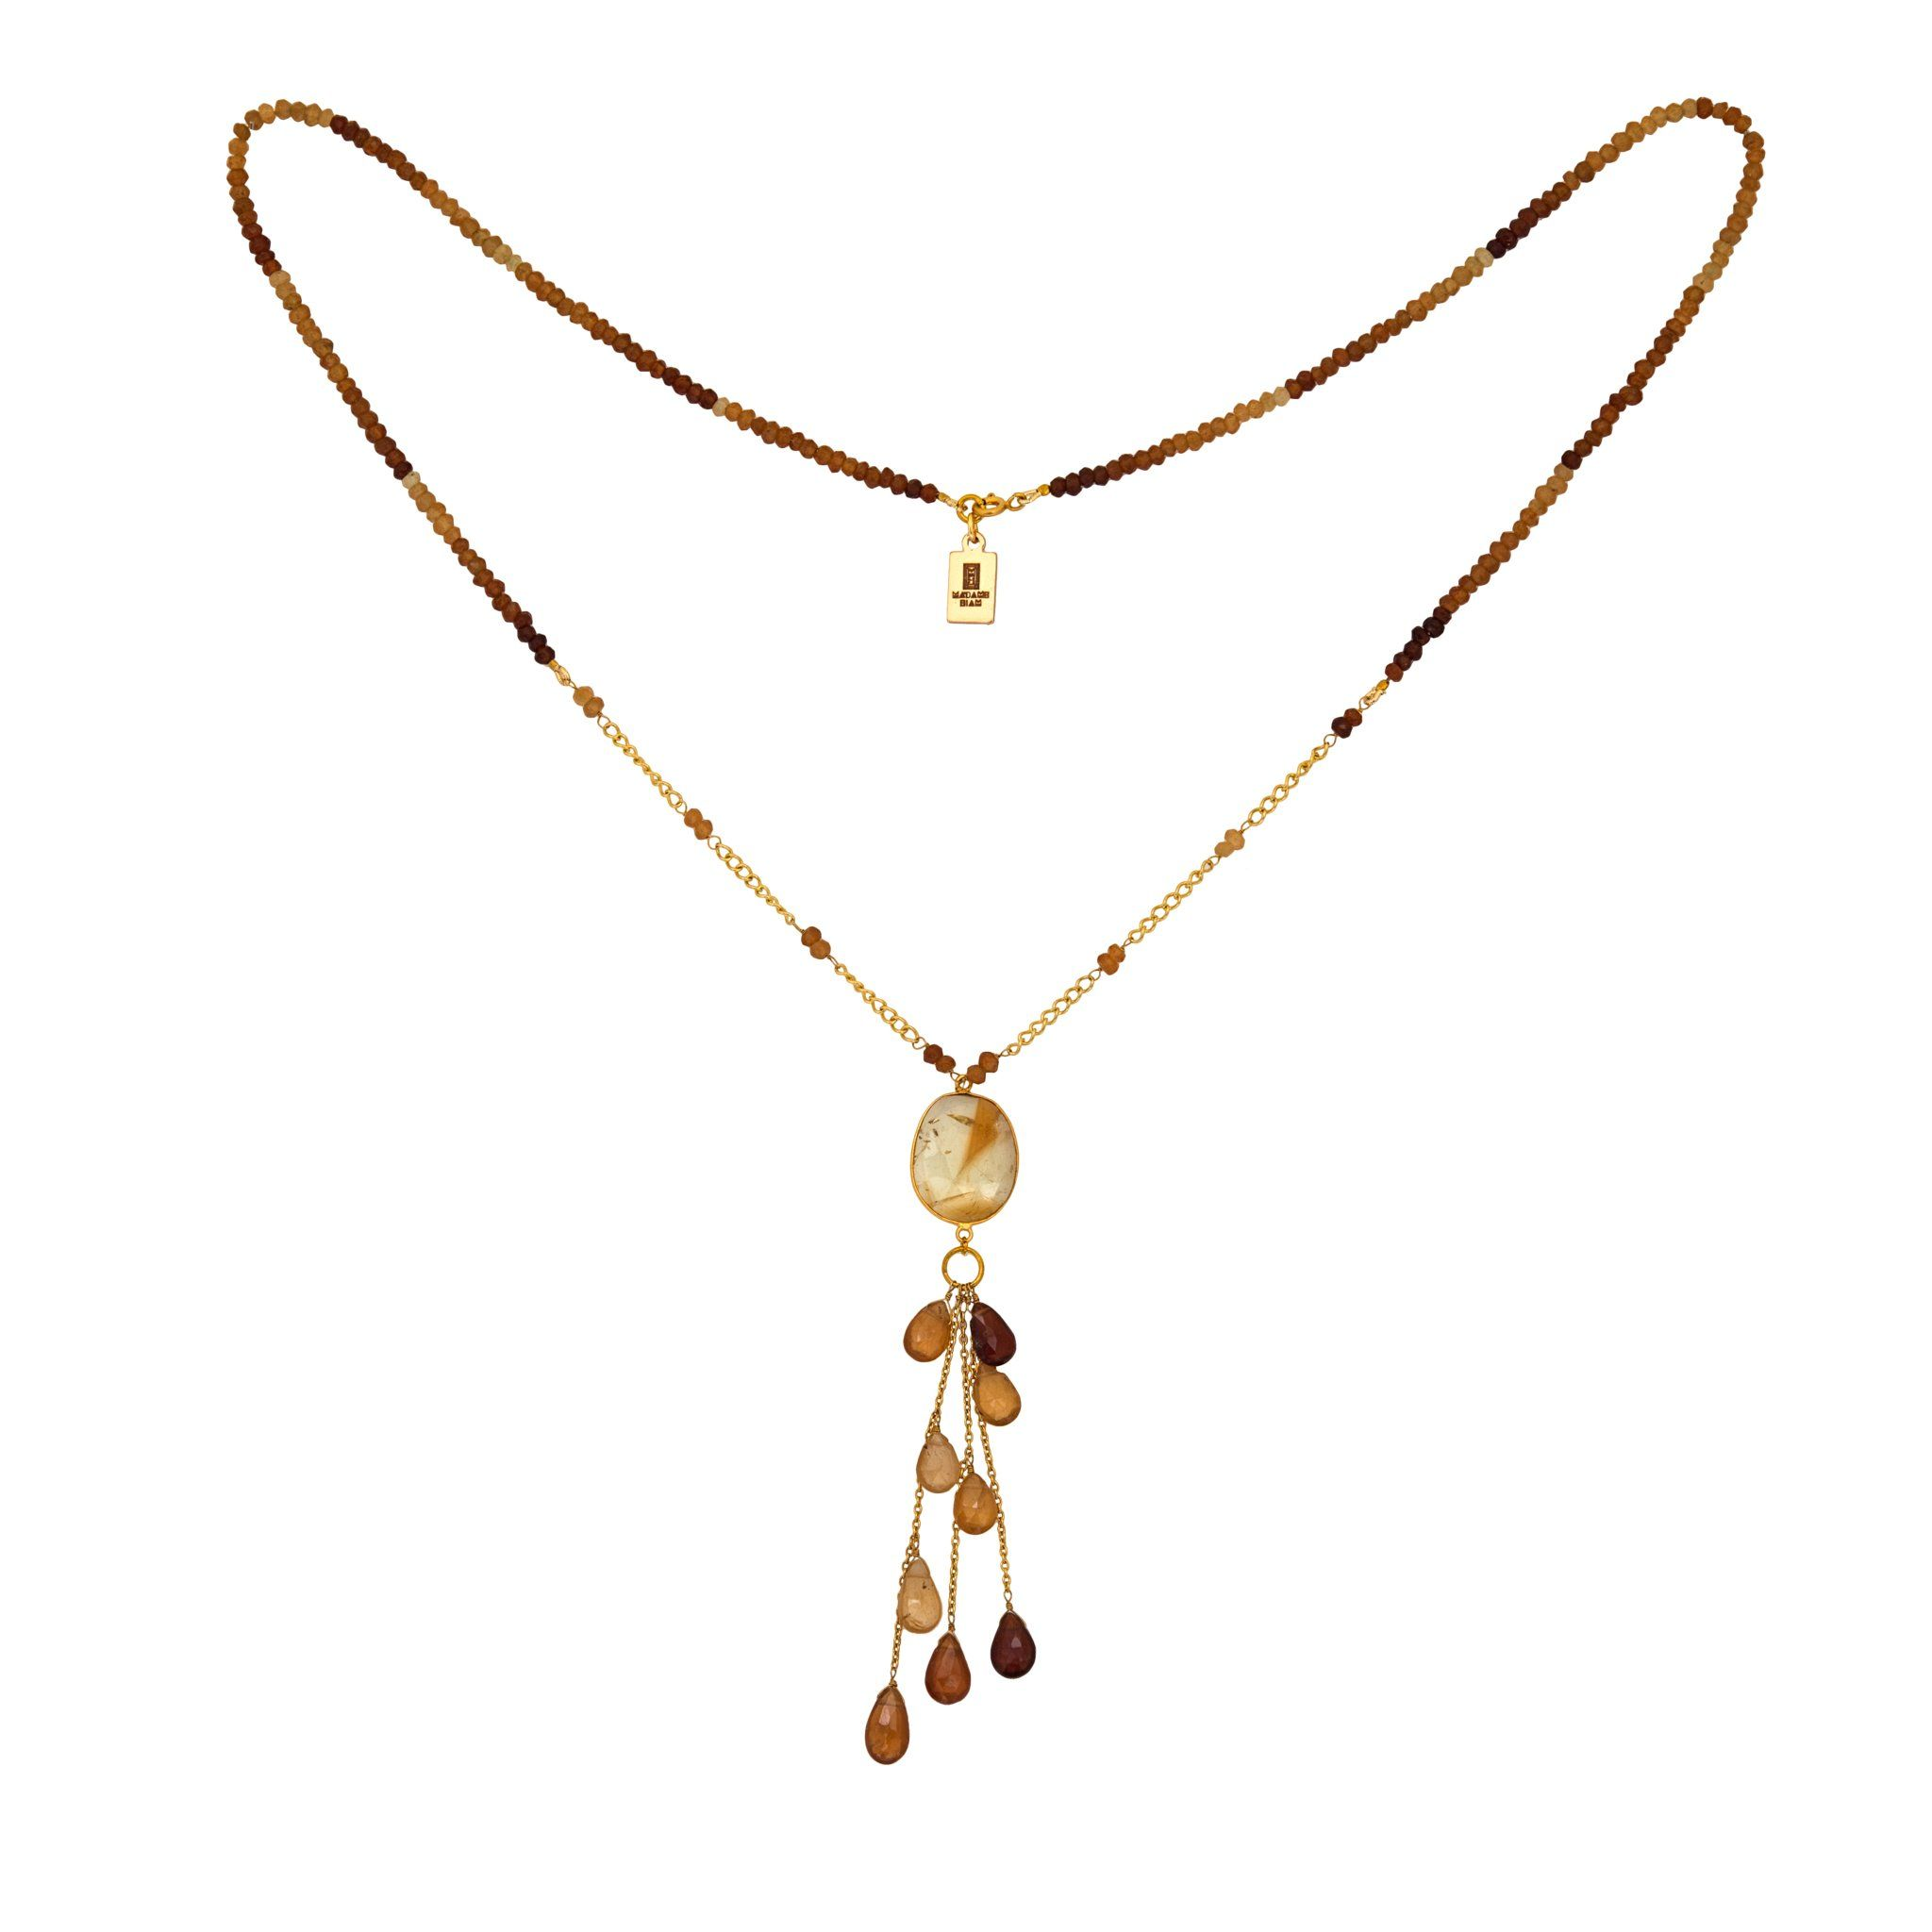 LUZ citrine necklace with drops - MadamSiam